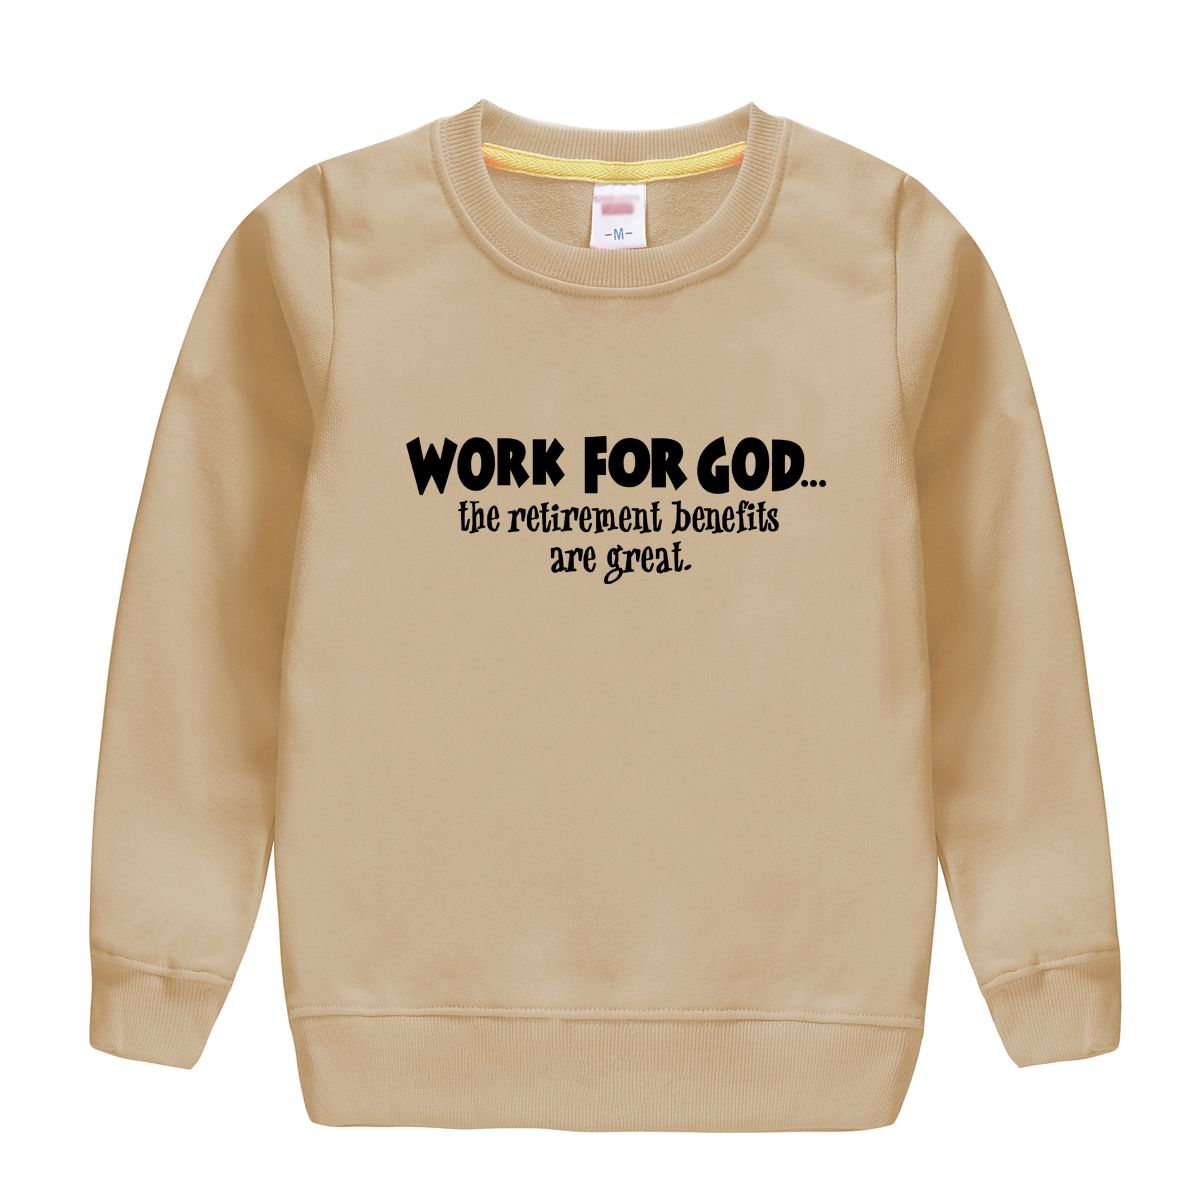 WORK FOR GOD pattern printed 2018 new fashion cotton beautiful sweatshirt baby boy hoodie clothing warm soft pullover for kids